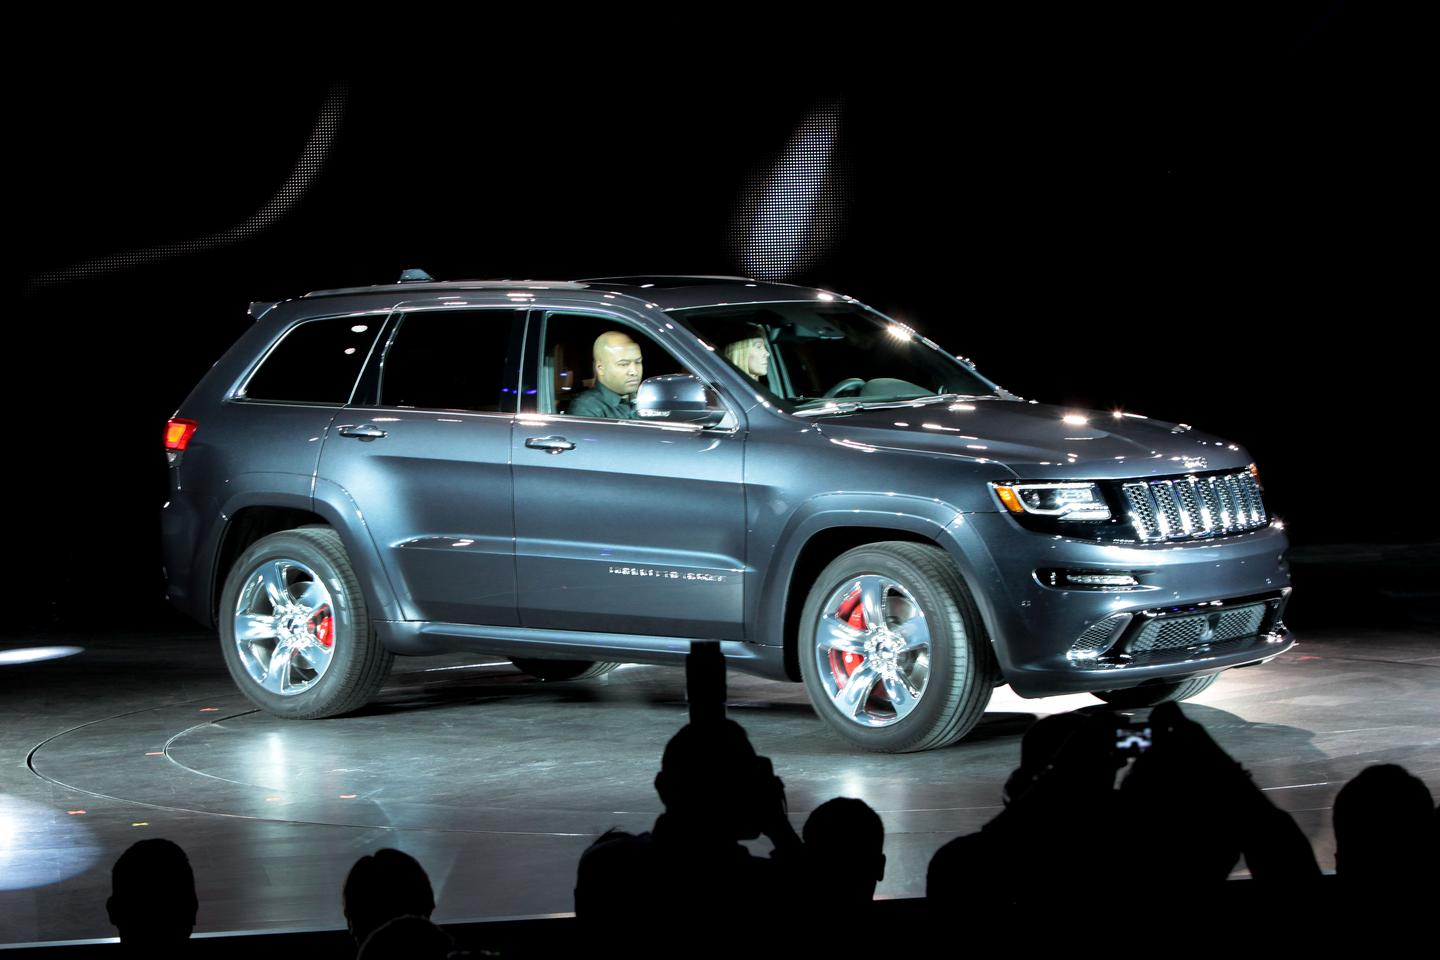 The new Grand Cherokee SRT on stage